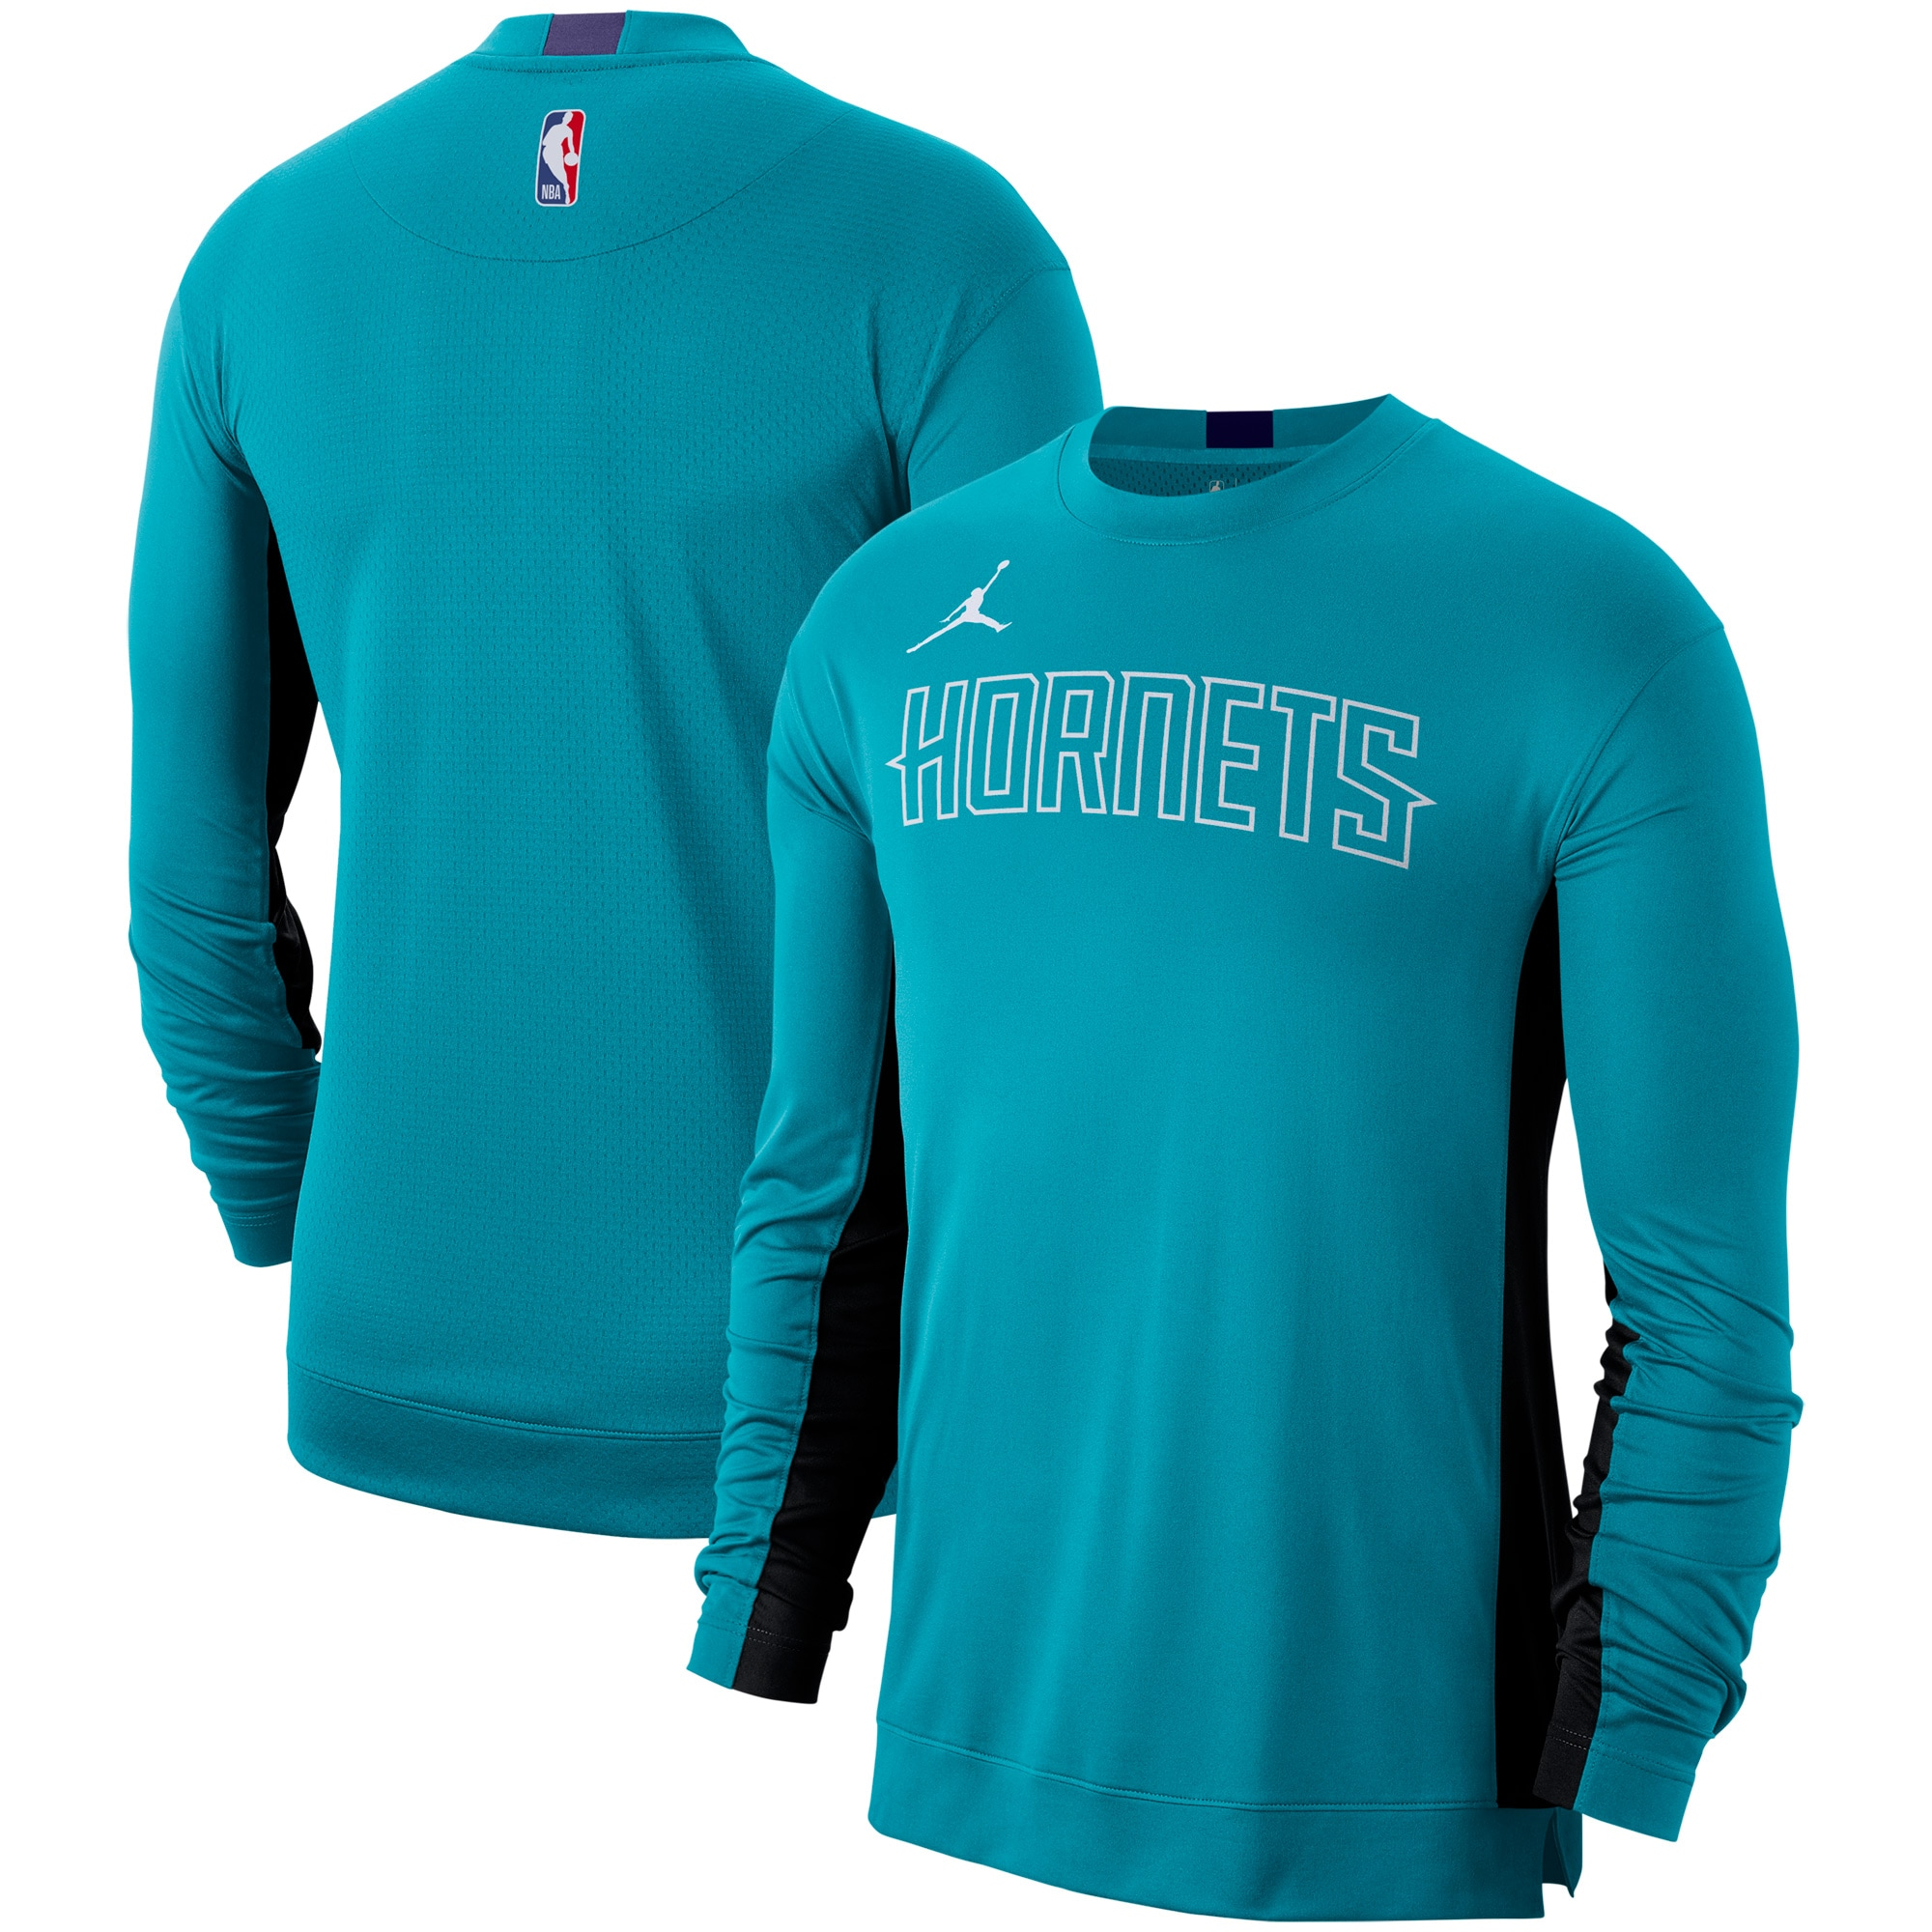 Charlotte Hornets Nike Long Sleeve Performance Shooting Shirt - Teal